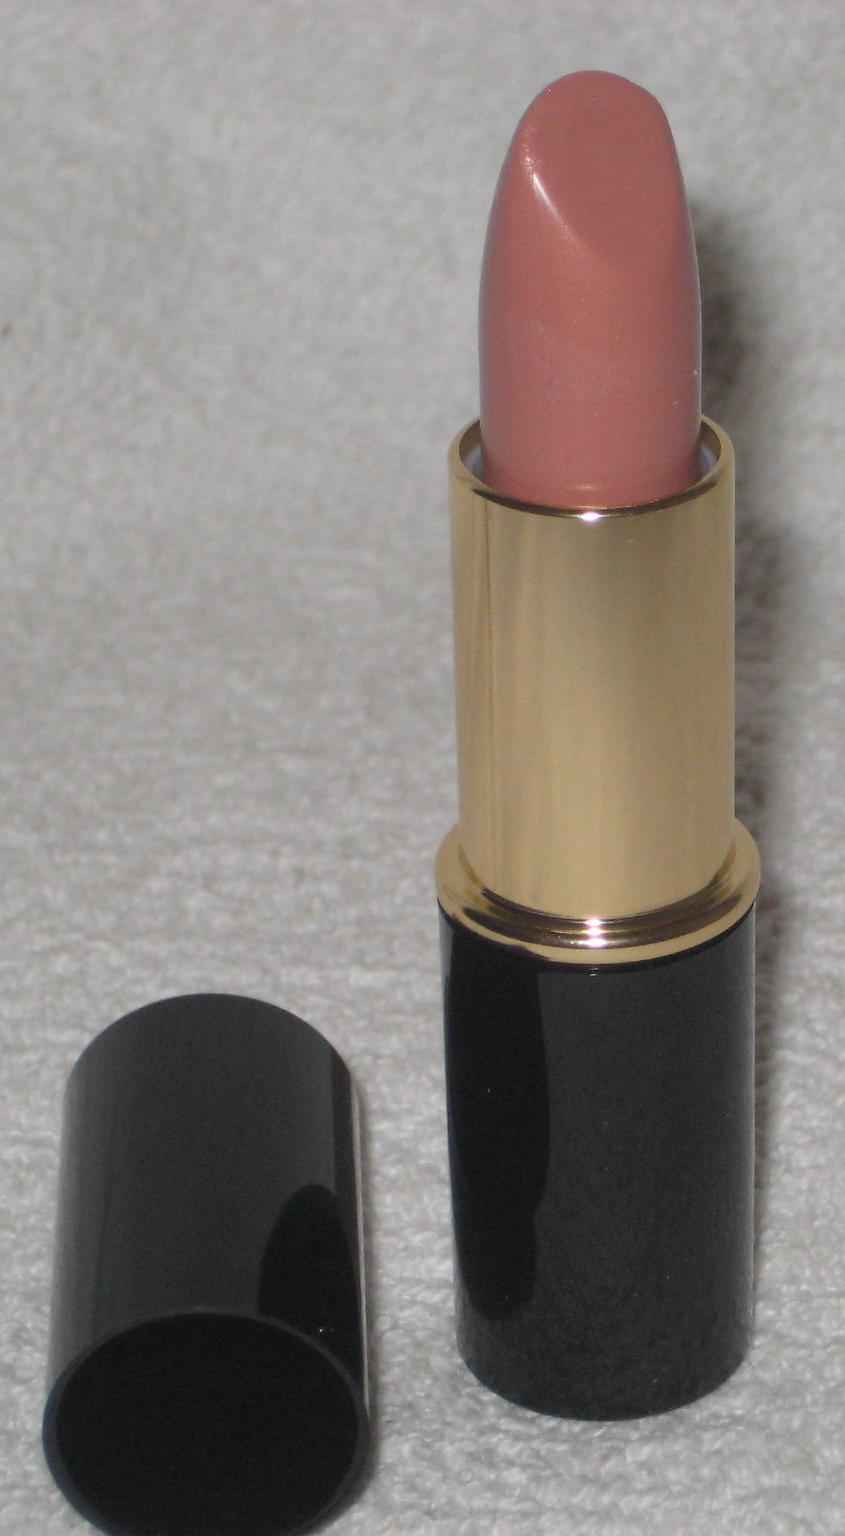 Lancome Rouge Sensation Lip Colour in Exposed - Discontinued - $19.95